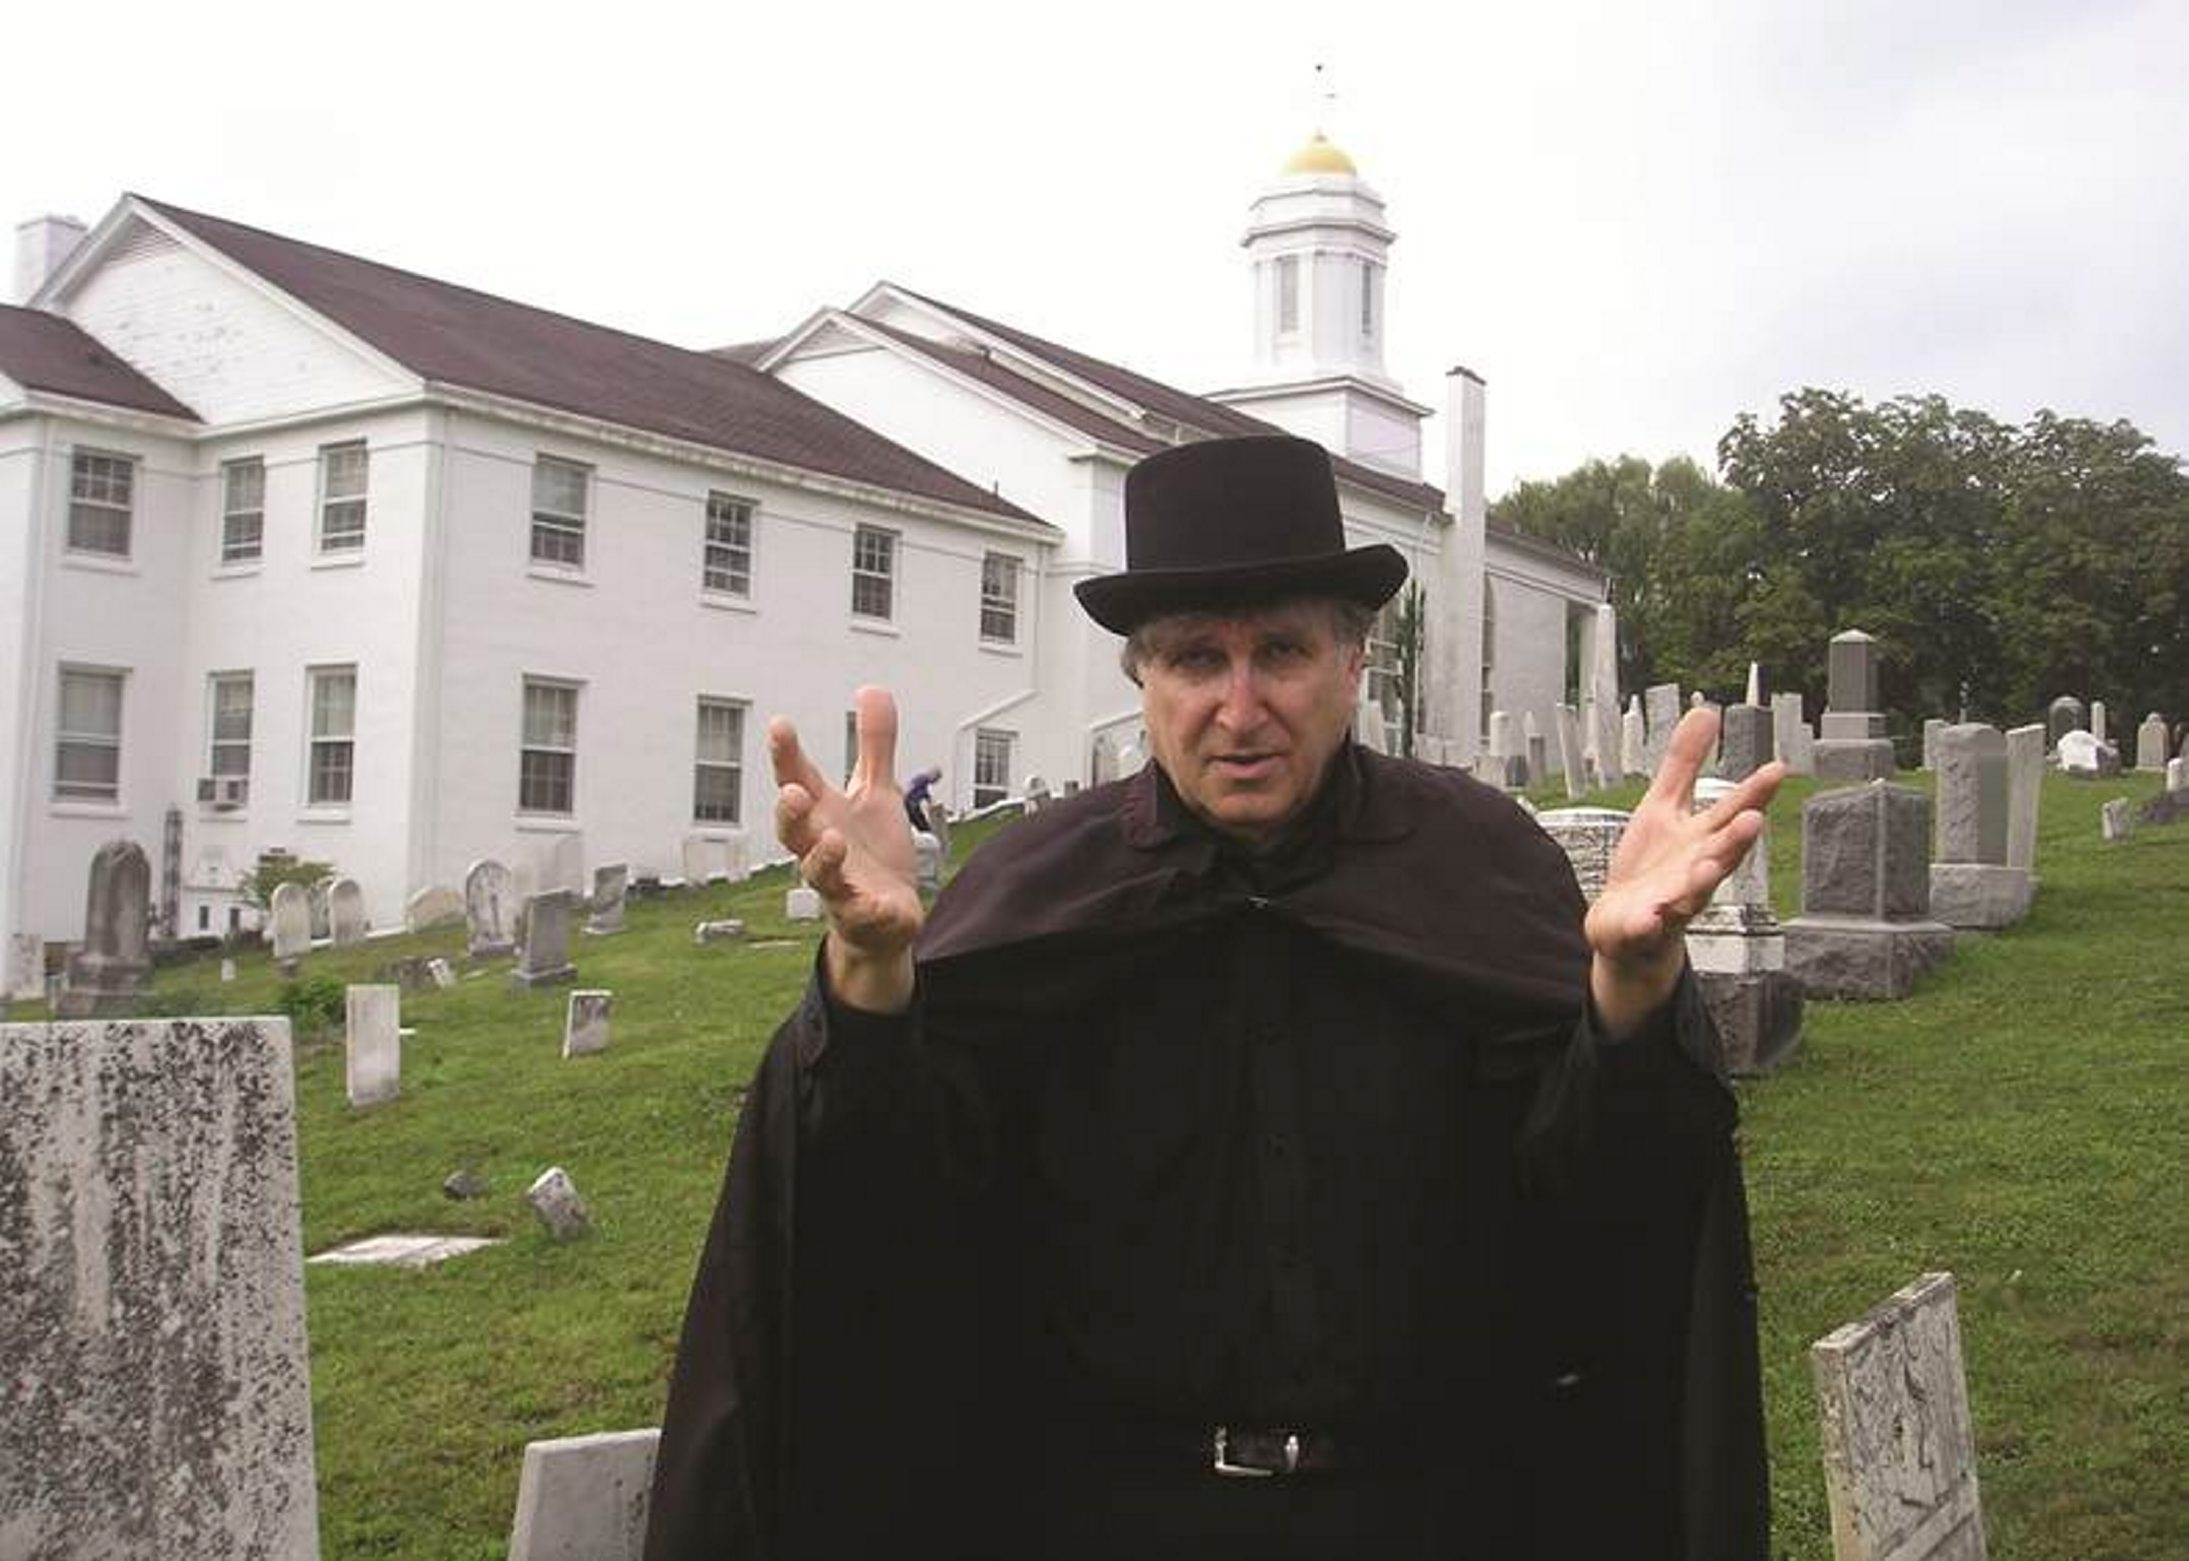 Frank Filicetti as the Walking Dead strikes a pose in Lewiston's Village Cemetery, next to First Presbyterian Church, the final stop on the Marble Orchard Ghost Walks.